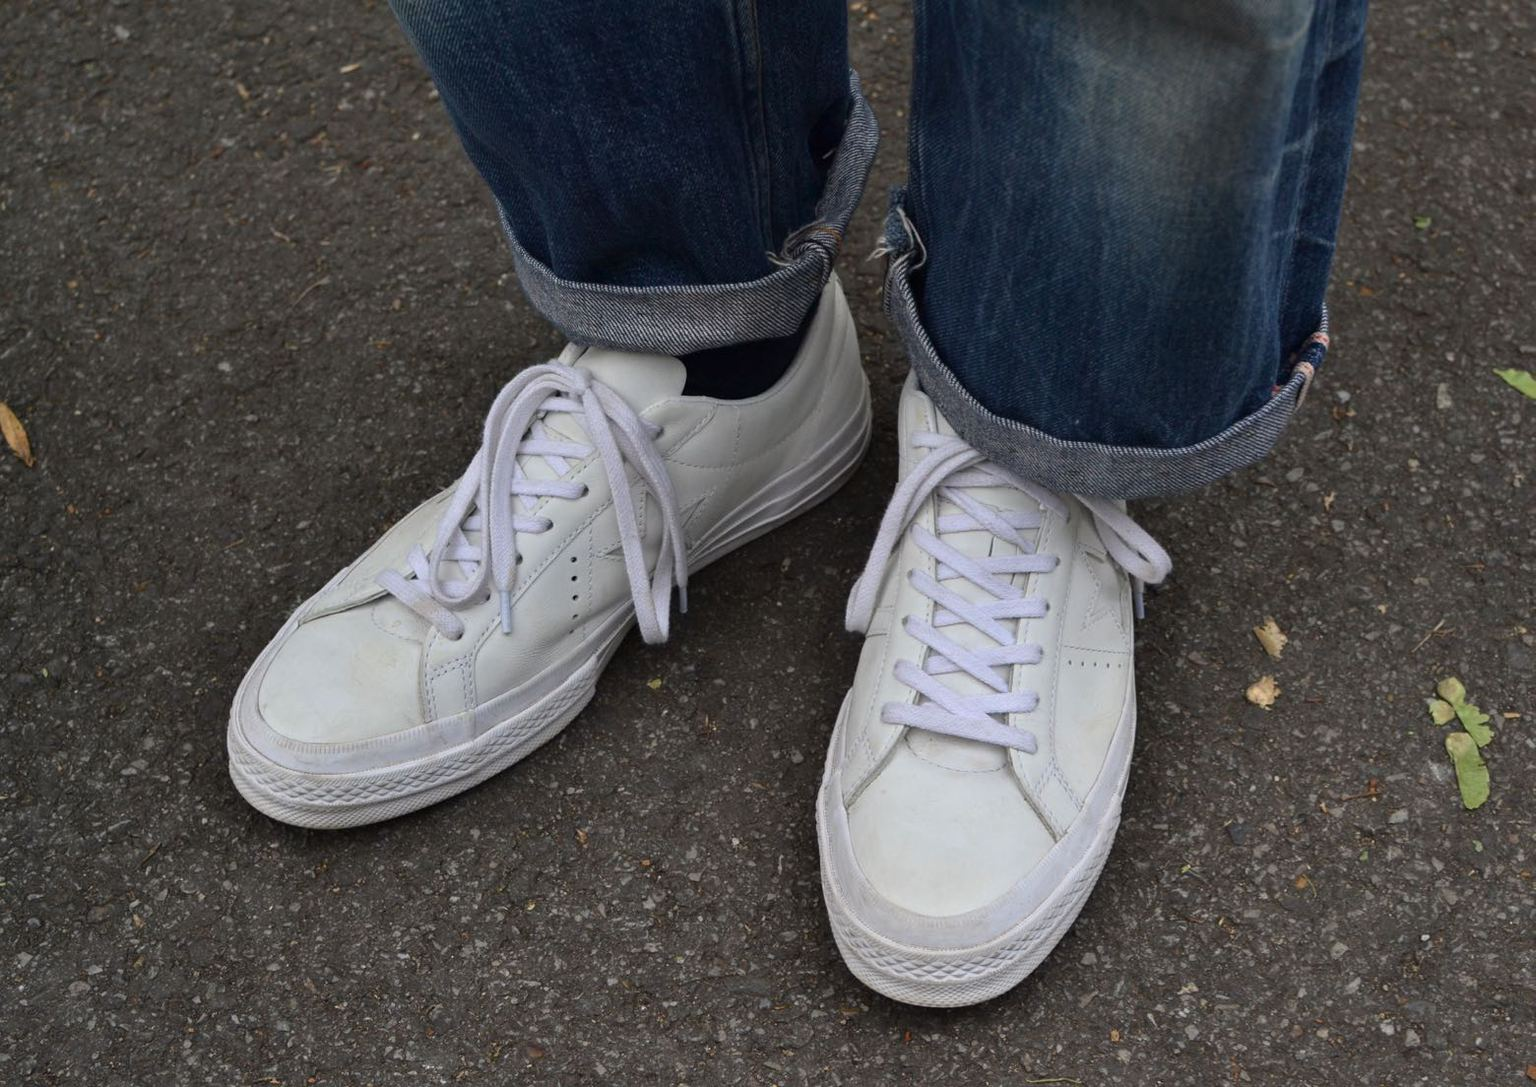 Converse x Engineered Garments one star sneakers white leather jean apx selvedge